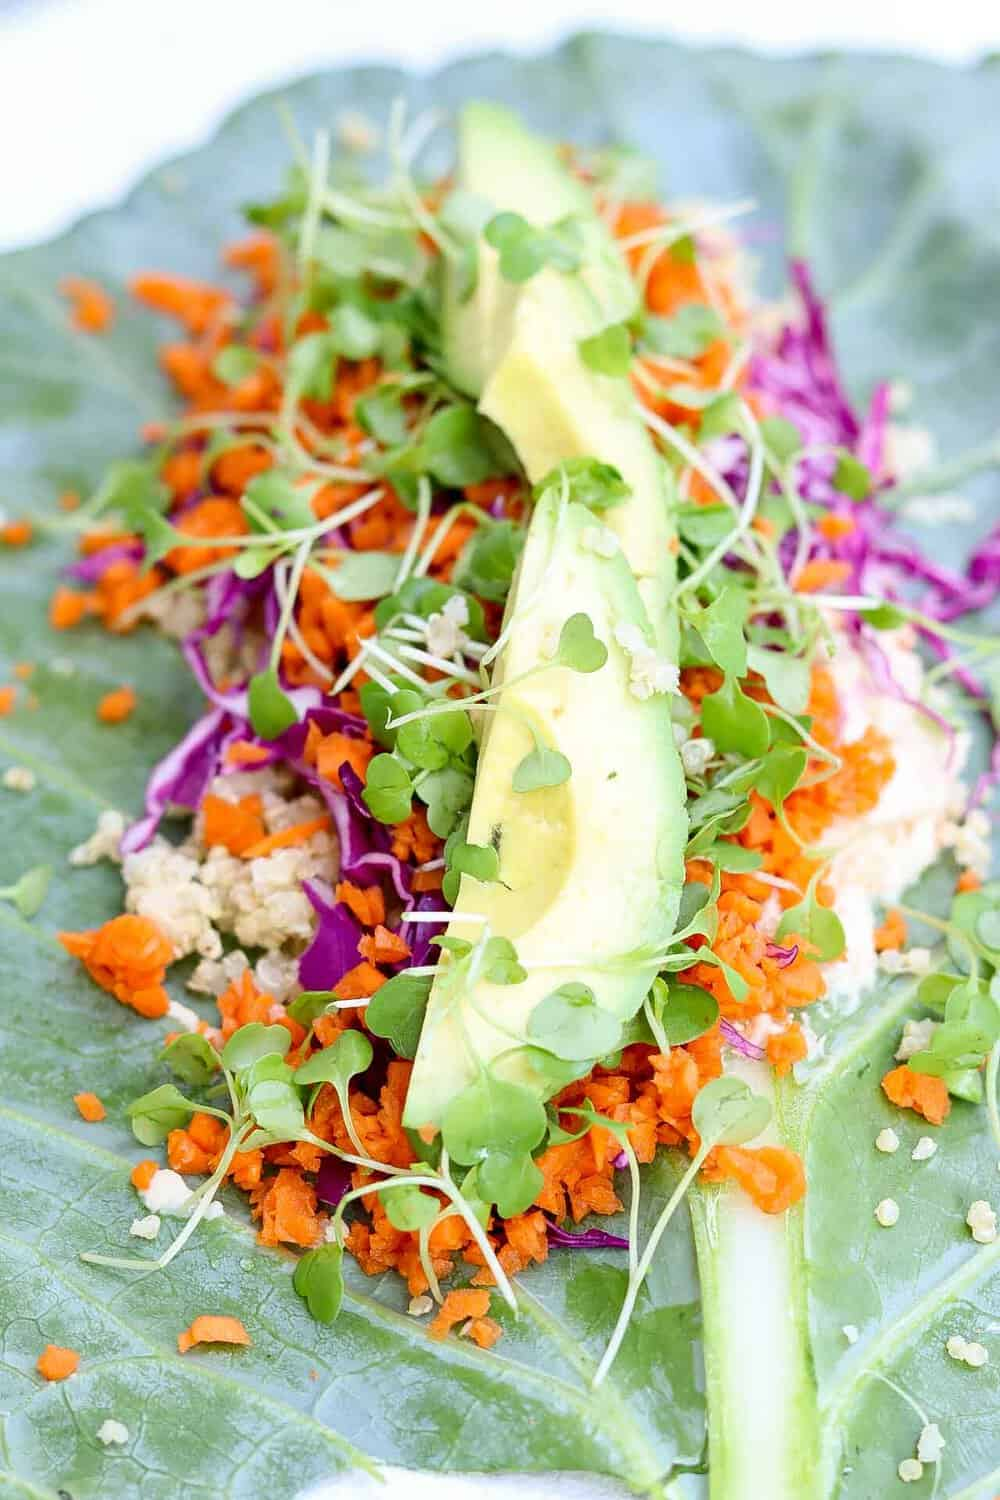 Collard leaf face up with veggies and avocado on top.